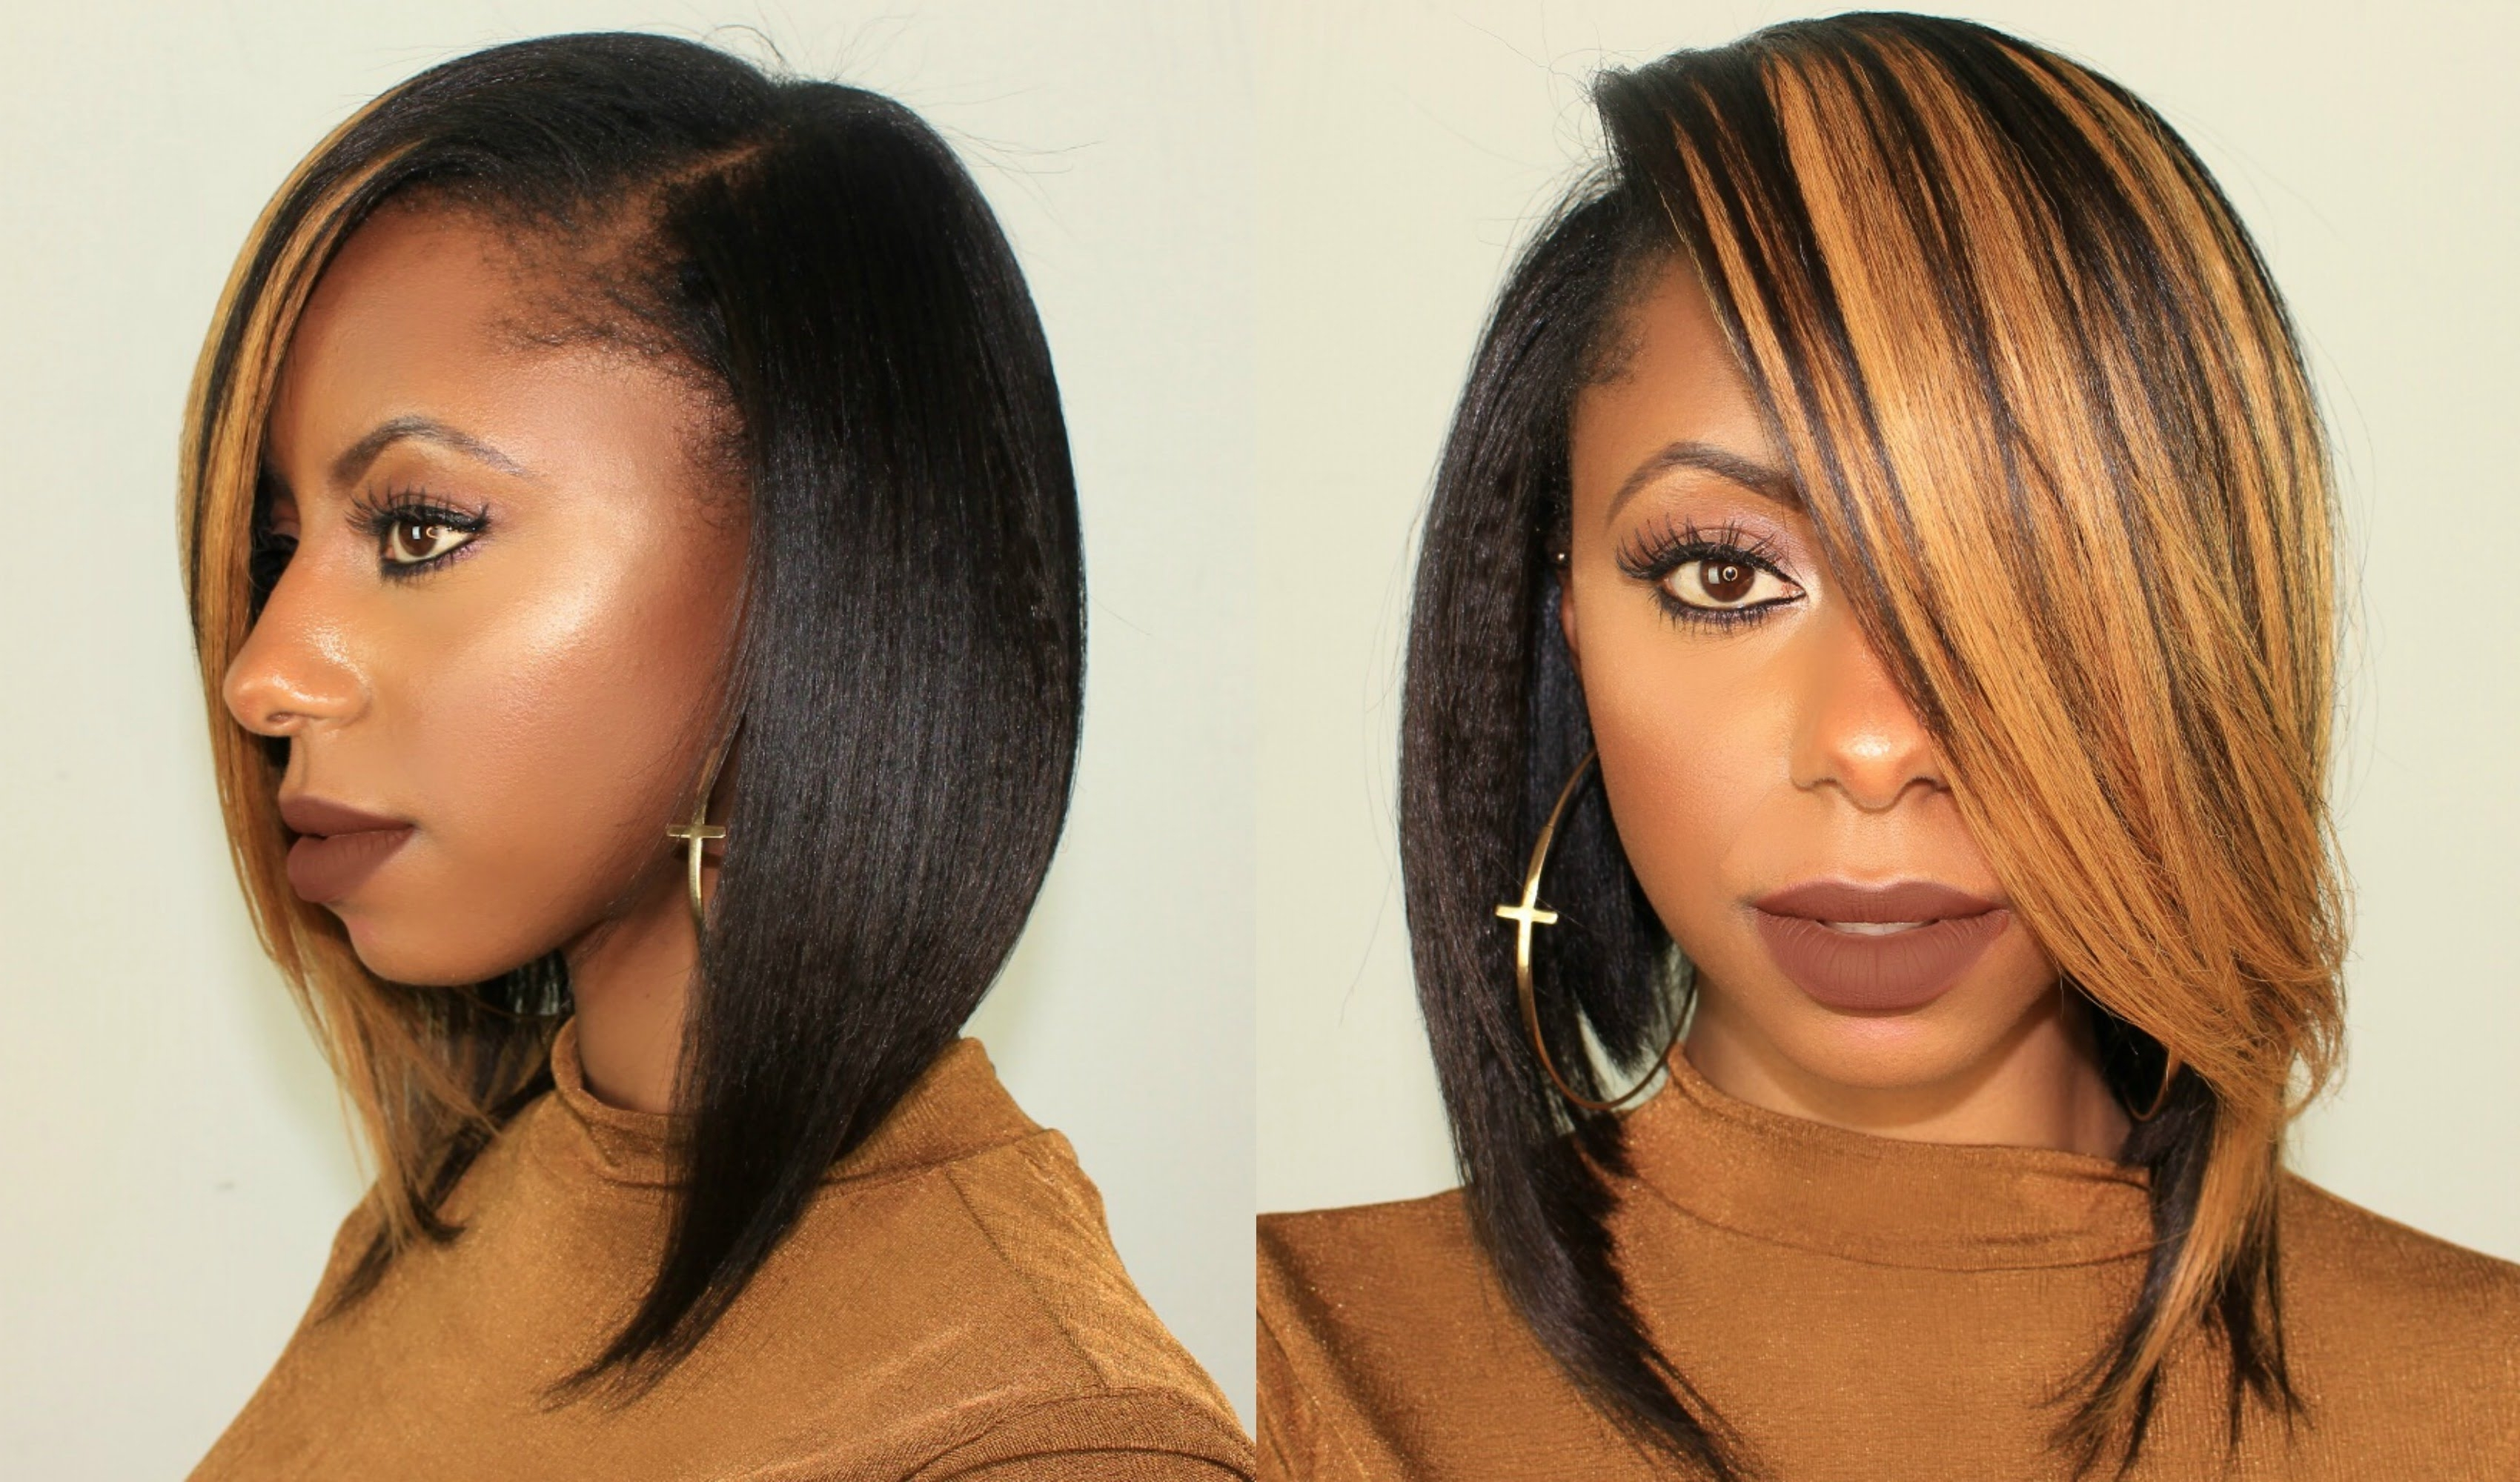 Honey Blonde Long Bob Hairstyle Ft Krshairgroup + 100k Giveaway In Newest Long Honey Blonde And Black Pixie Hairstyles (View 4 of 20)